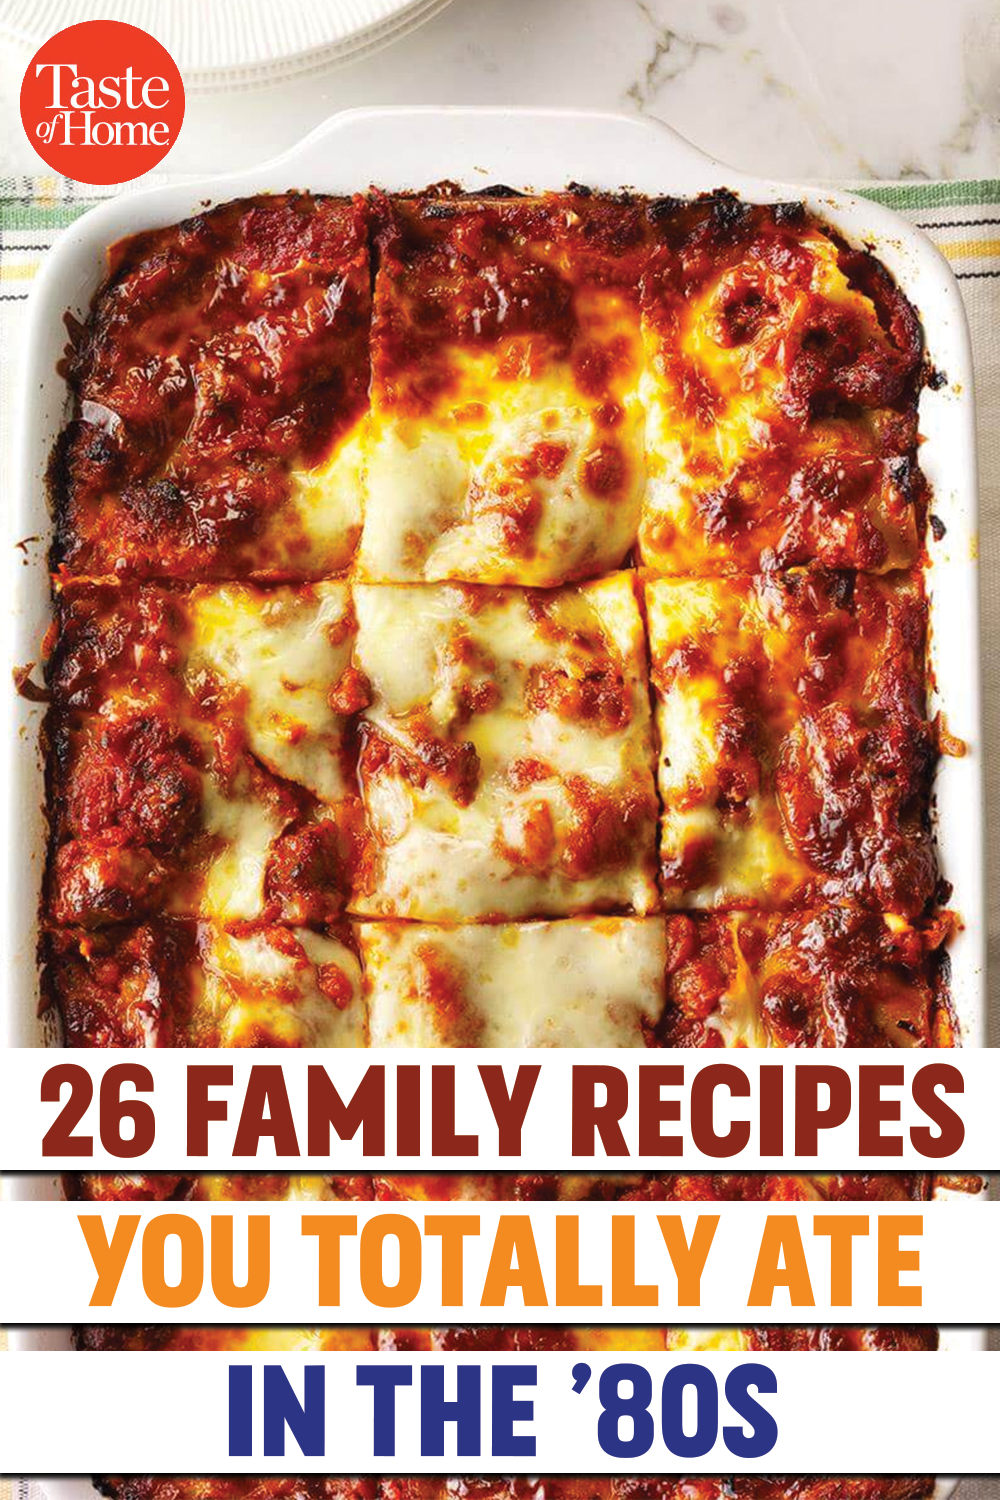 26 Family Recipes You Totally Ate in the '80s